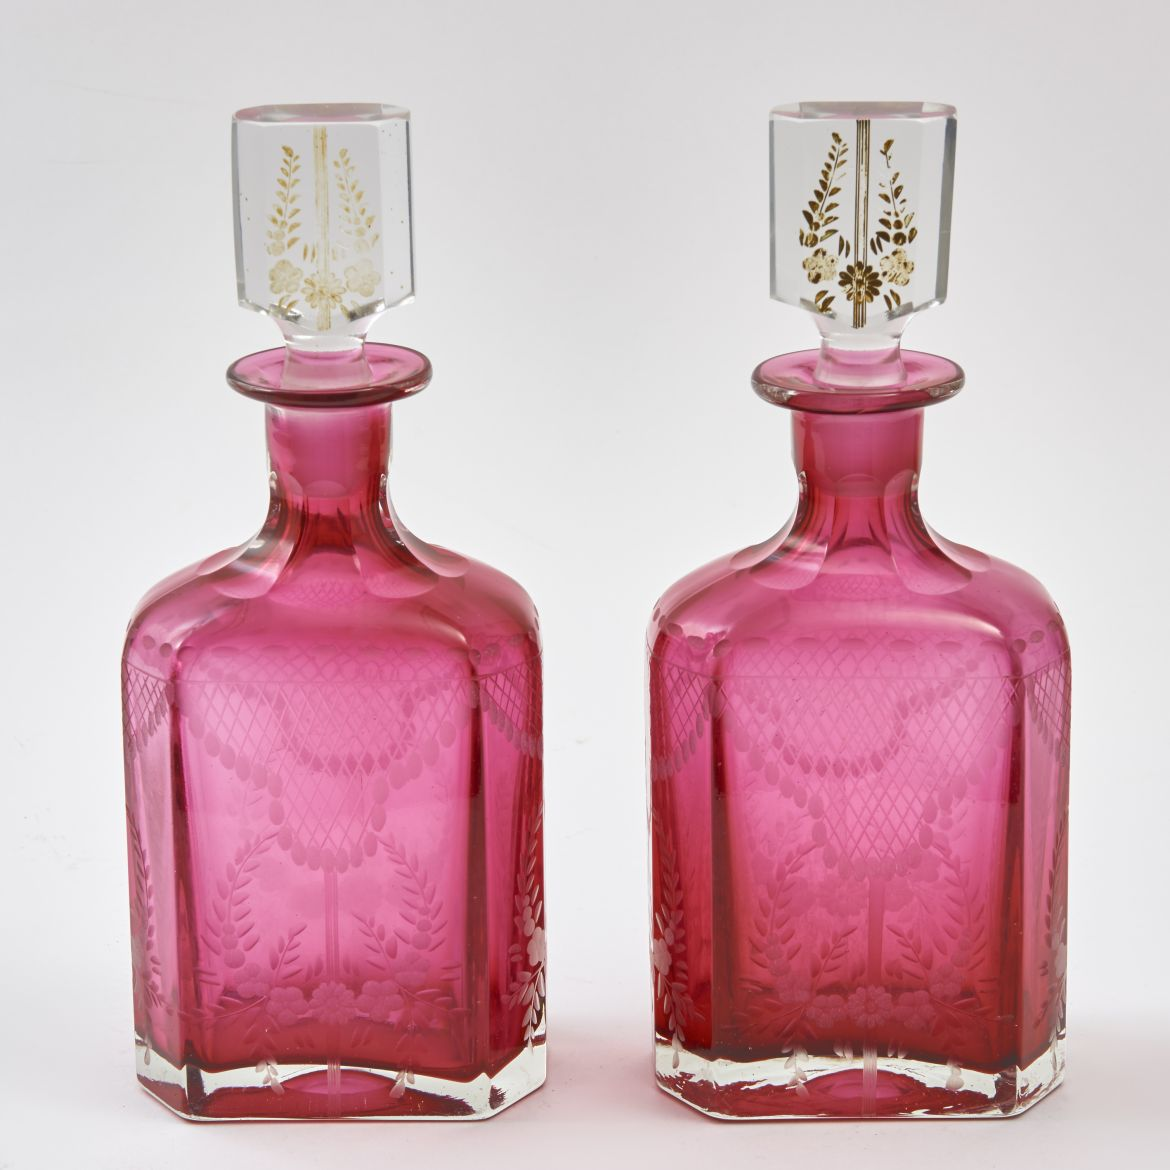 Bohemian Cranberry Glass Decanters